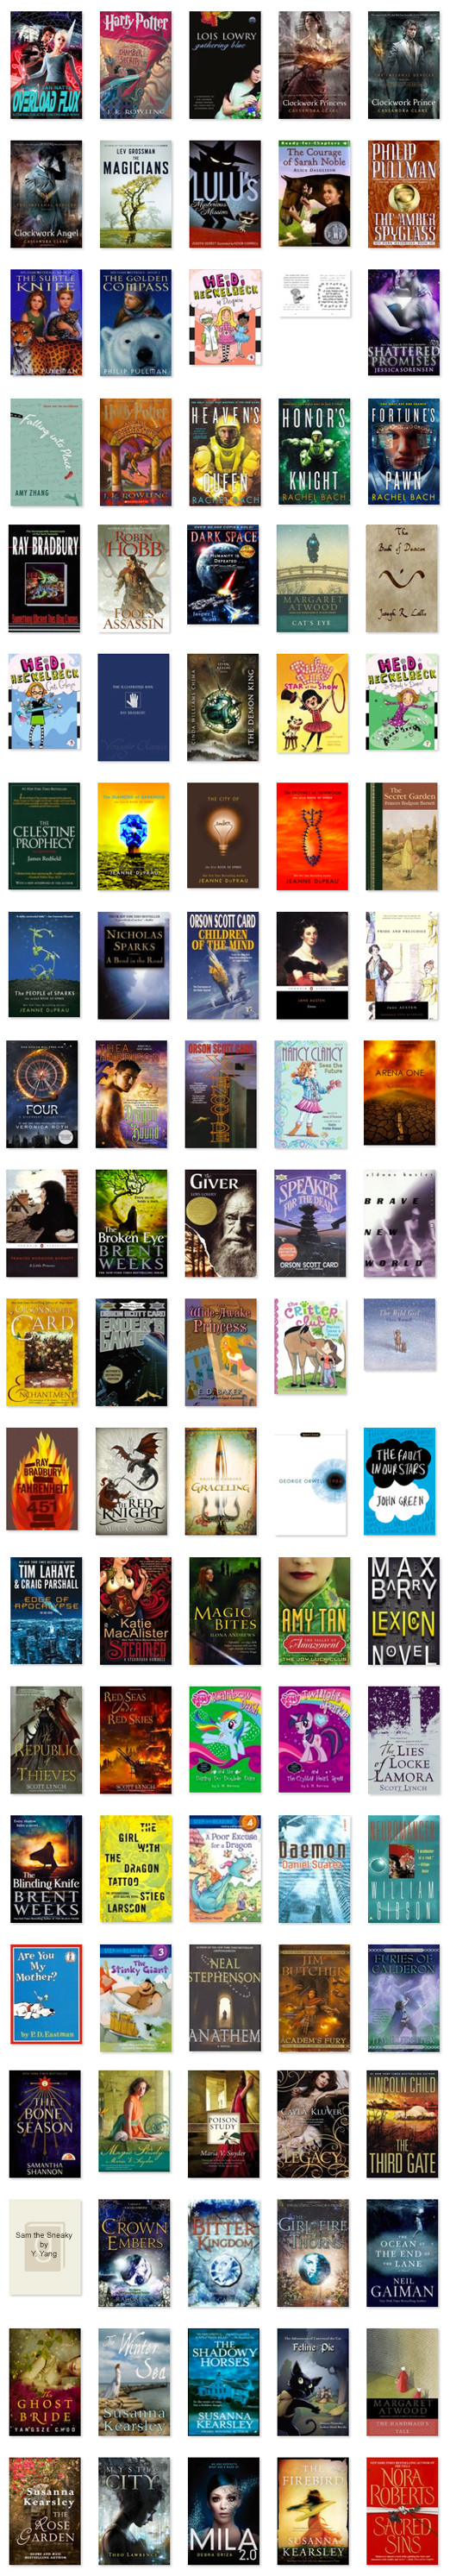 GR100BooksComplete2014i_522